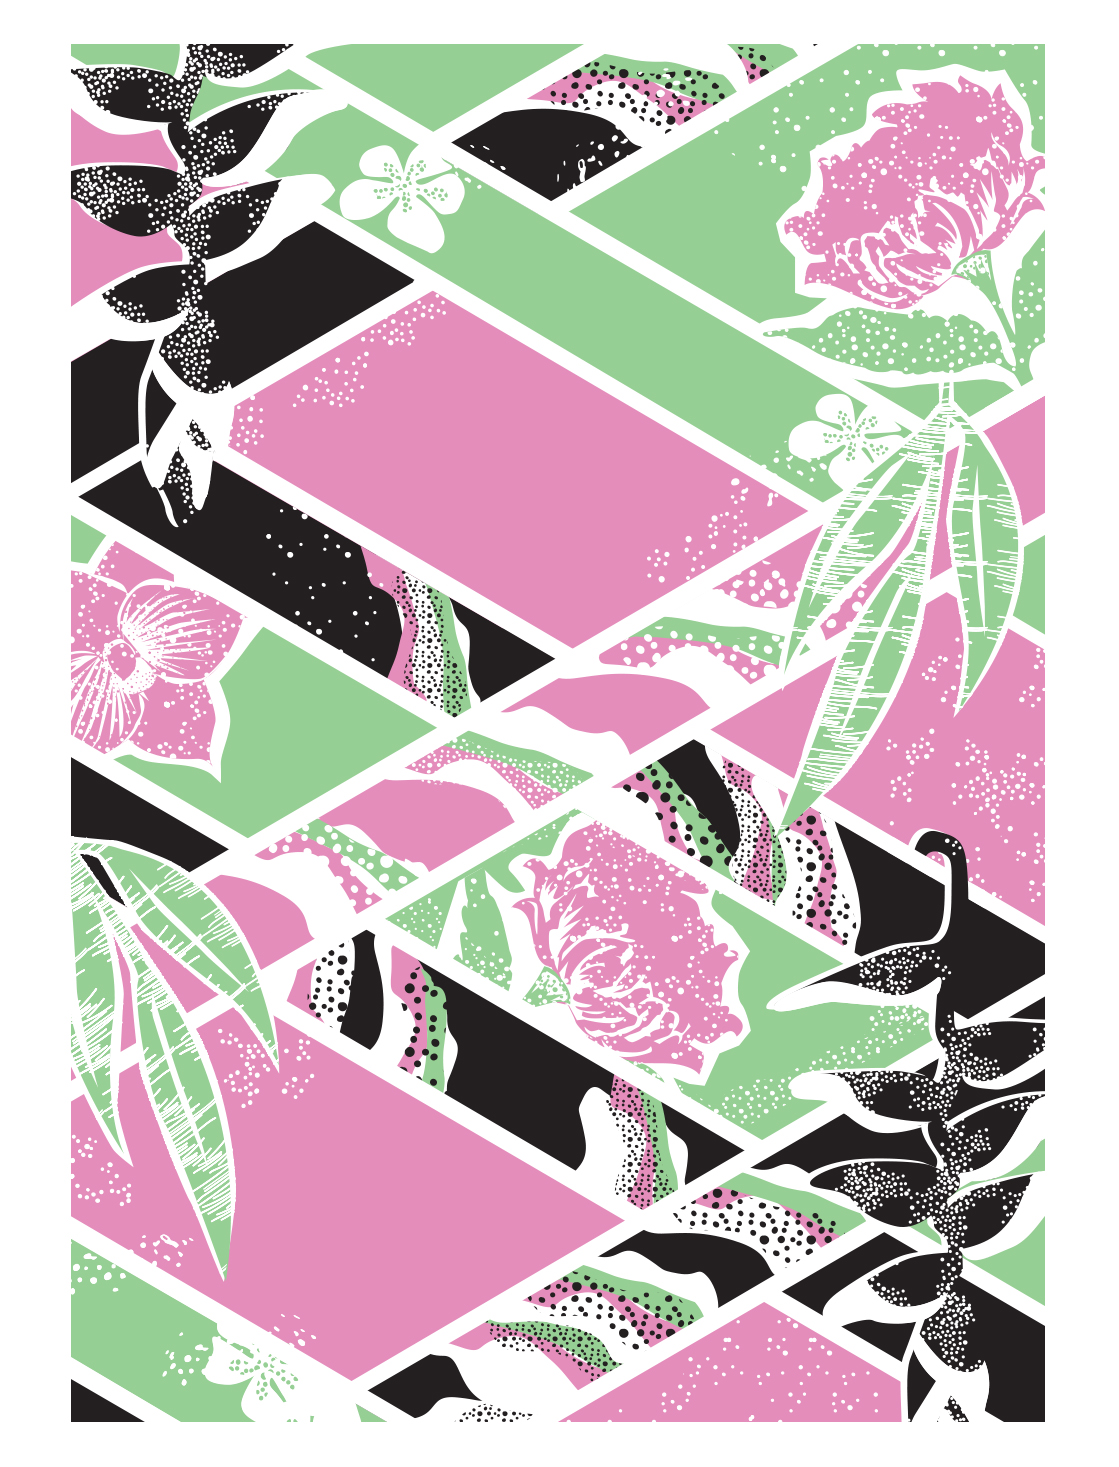 'Criss-cross' screen printed on tea towels and cards.